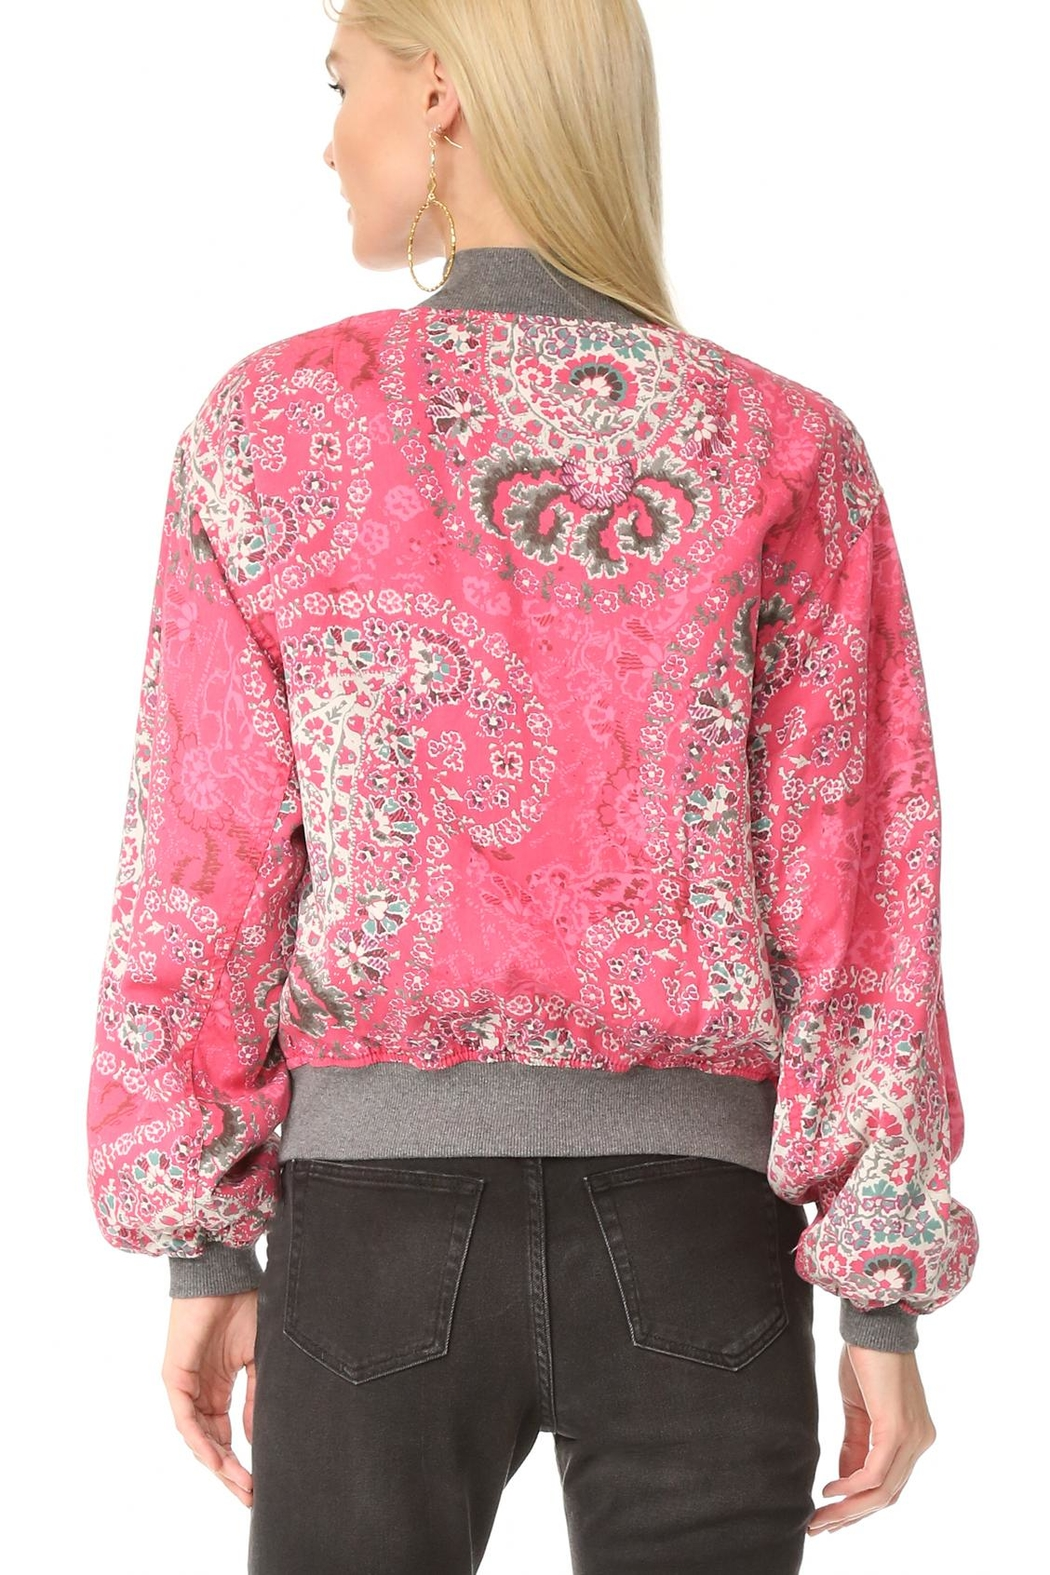 Free People Floral Bomber Jacket - Front Full Image